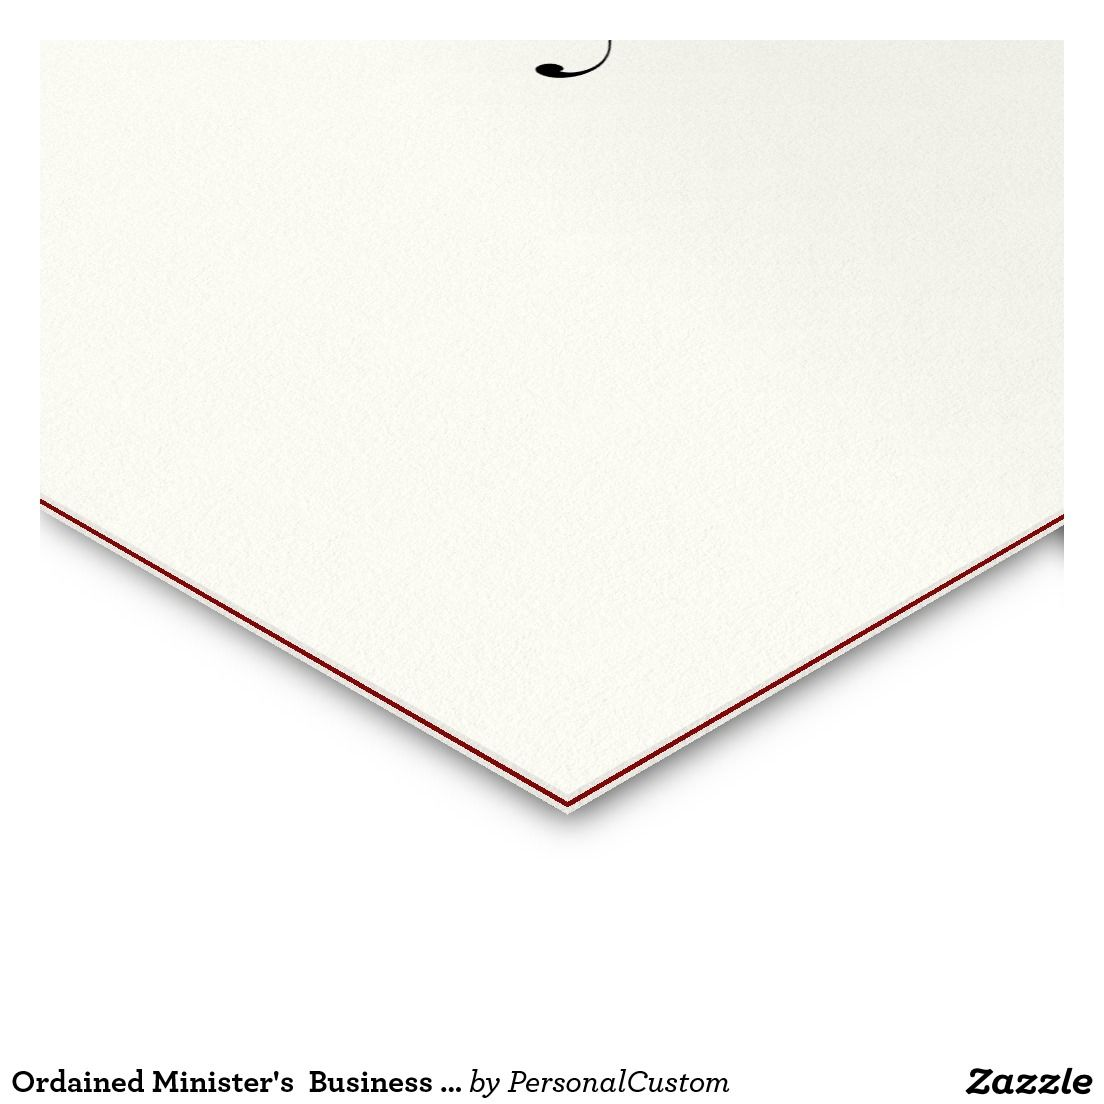 Ordained ministers business card business cards pinterest ordained ministers business card colourmoves